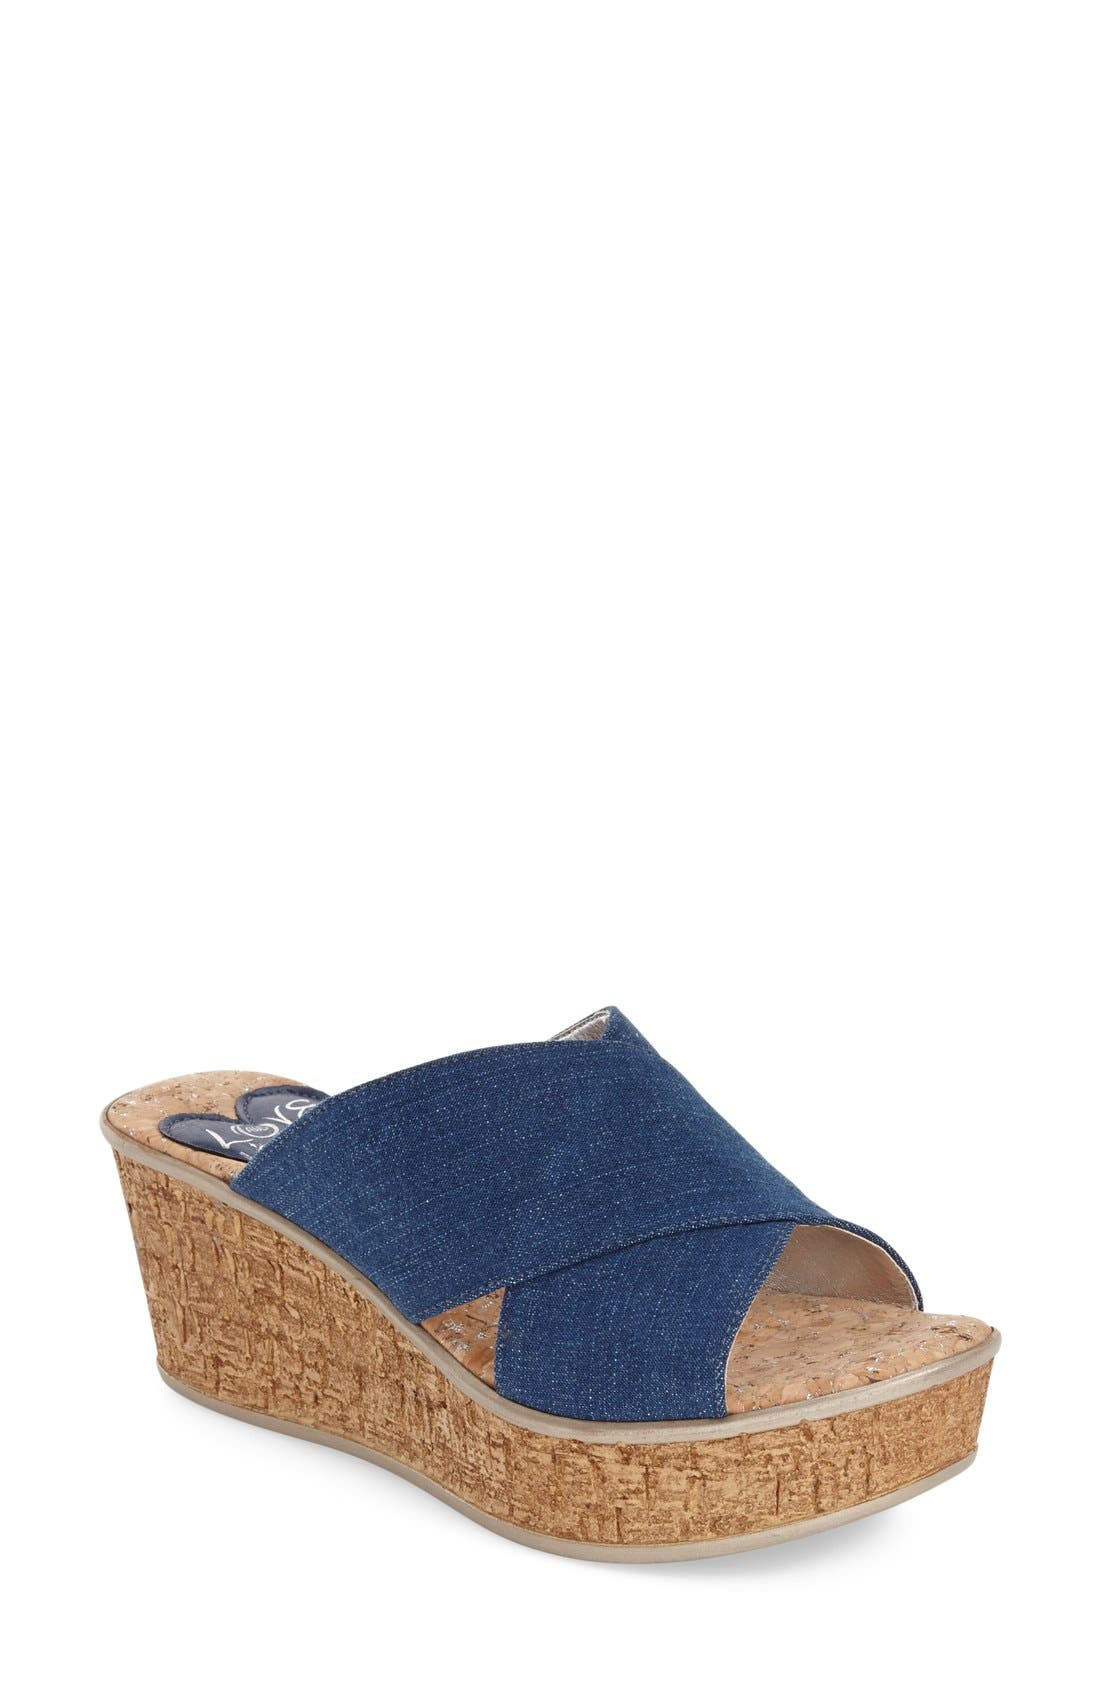 Love and Liberty 'Olga' Wedge Slide Sandal (Women)